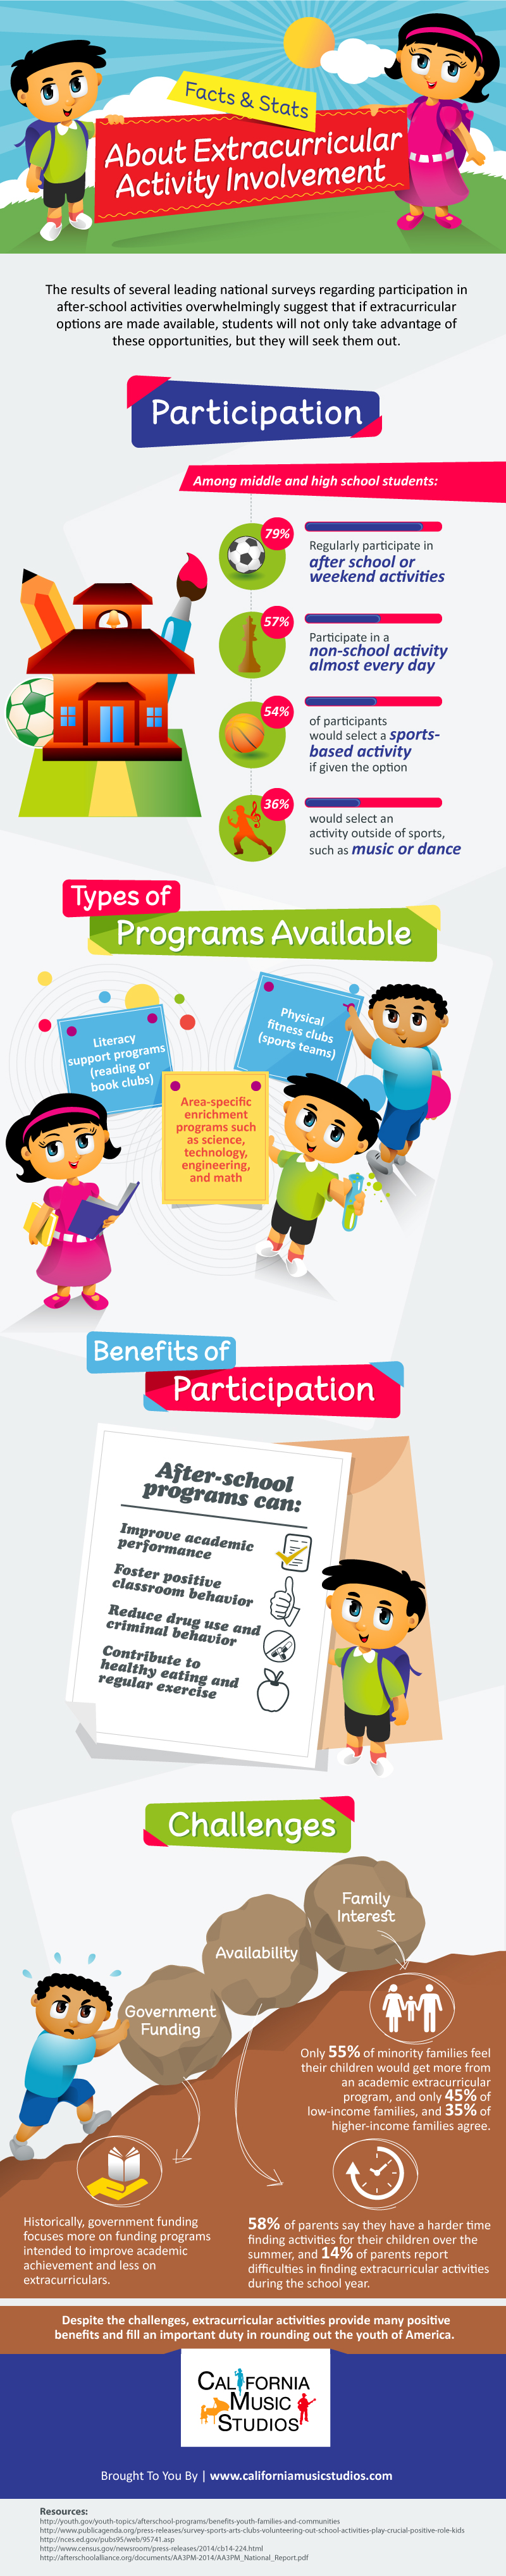 Facts & Stats About Extracurricular Activity Involvement